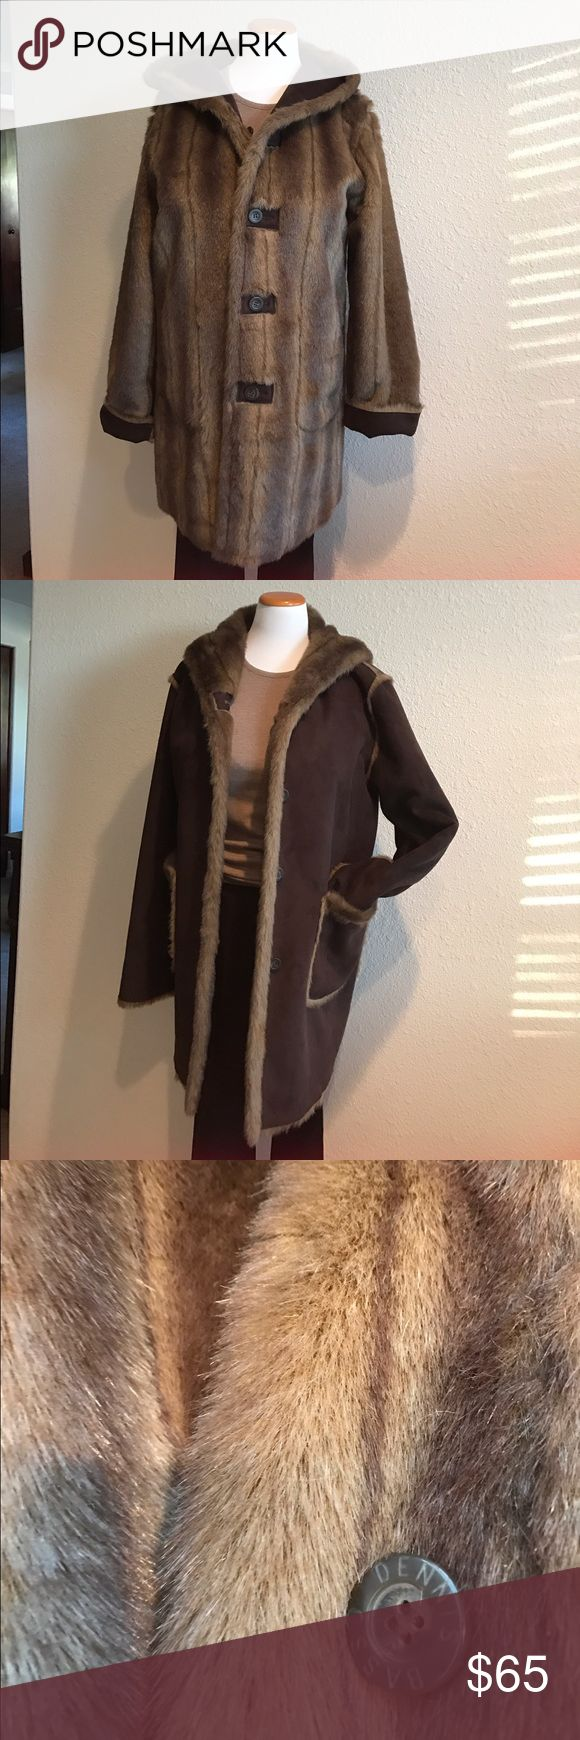 """BEAUTIFUL Dennis Basso reversible coat! Dennis Basso coat,dark chocolate brown suede and faux fur, so plush and cozy.This honestly feels so real and didn't hurt any animals.NWOT 48""""b Dennis Basso Jackets & Coats"""